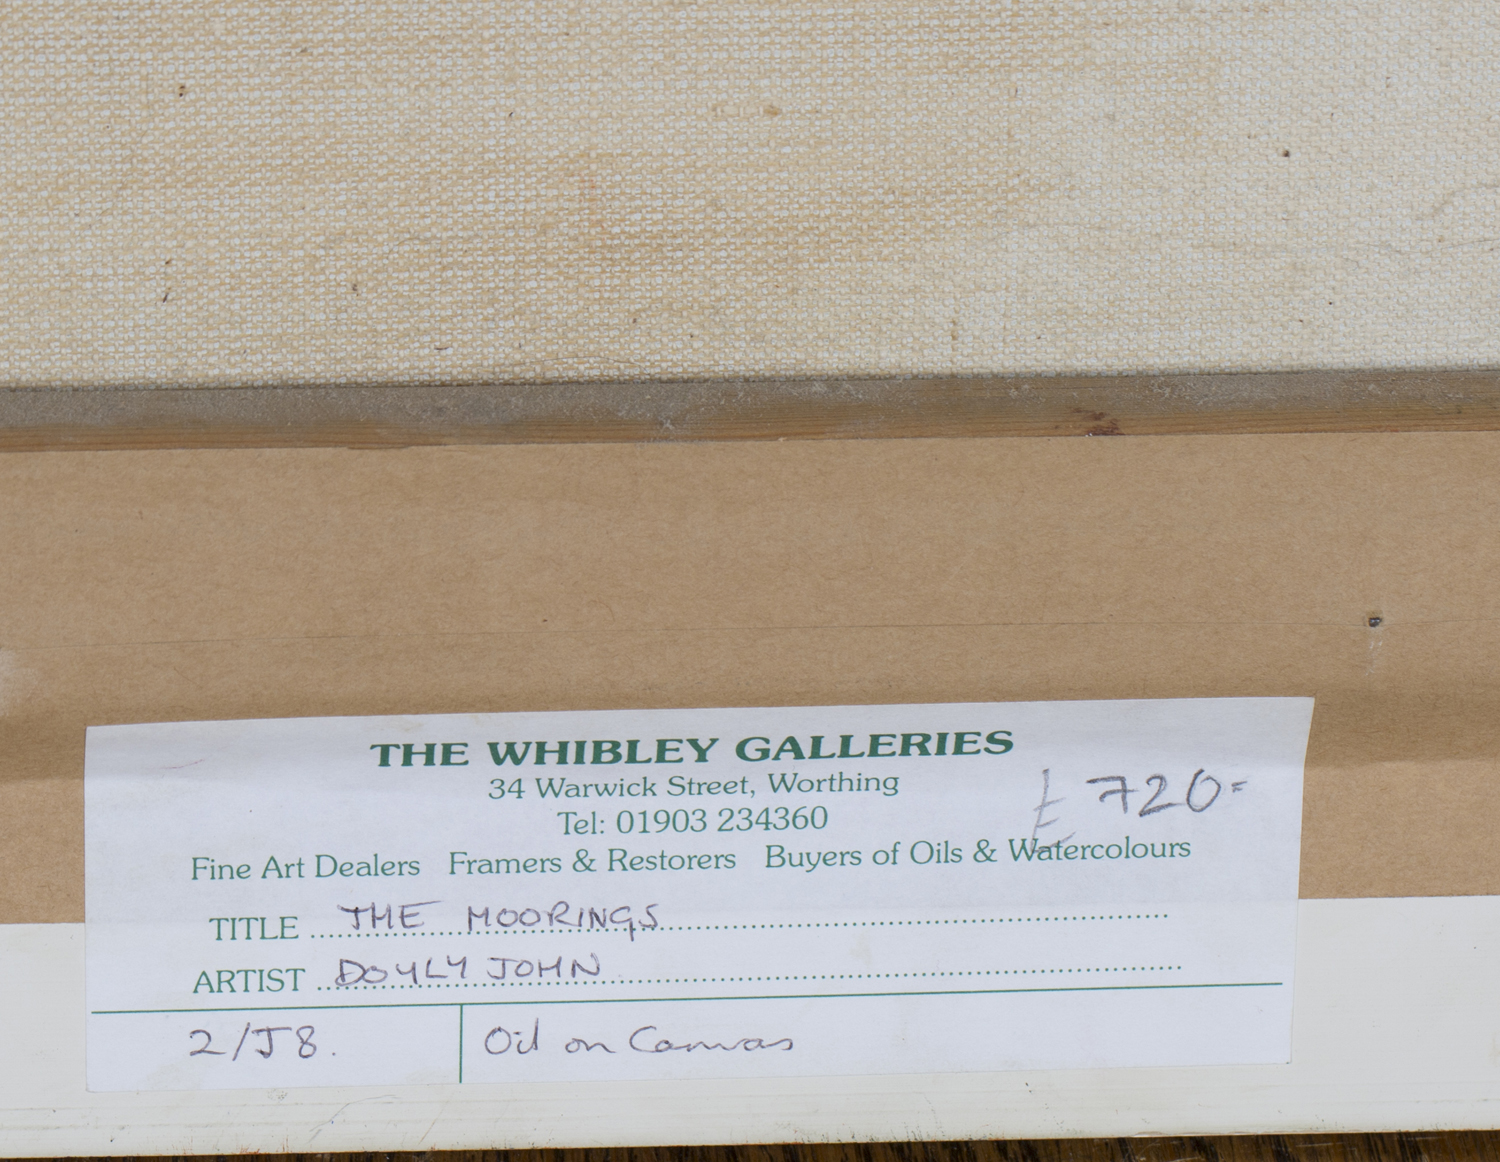 Lot 6 - Cecil R. Doyly-John - 'The Moorings', 20th century oil on canvas, signed recto, labels and study